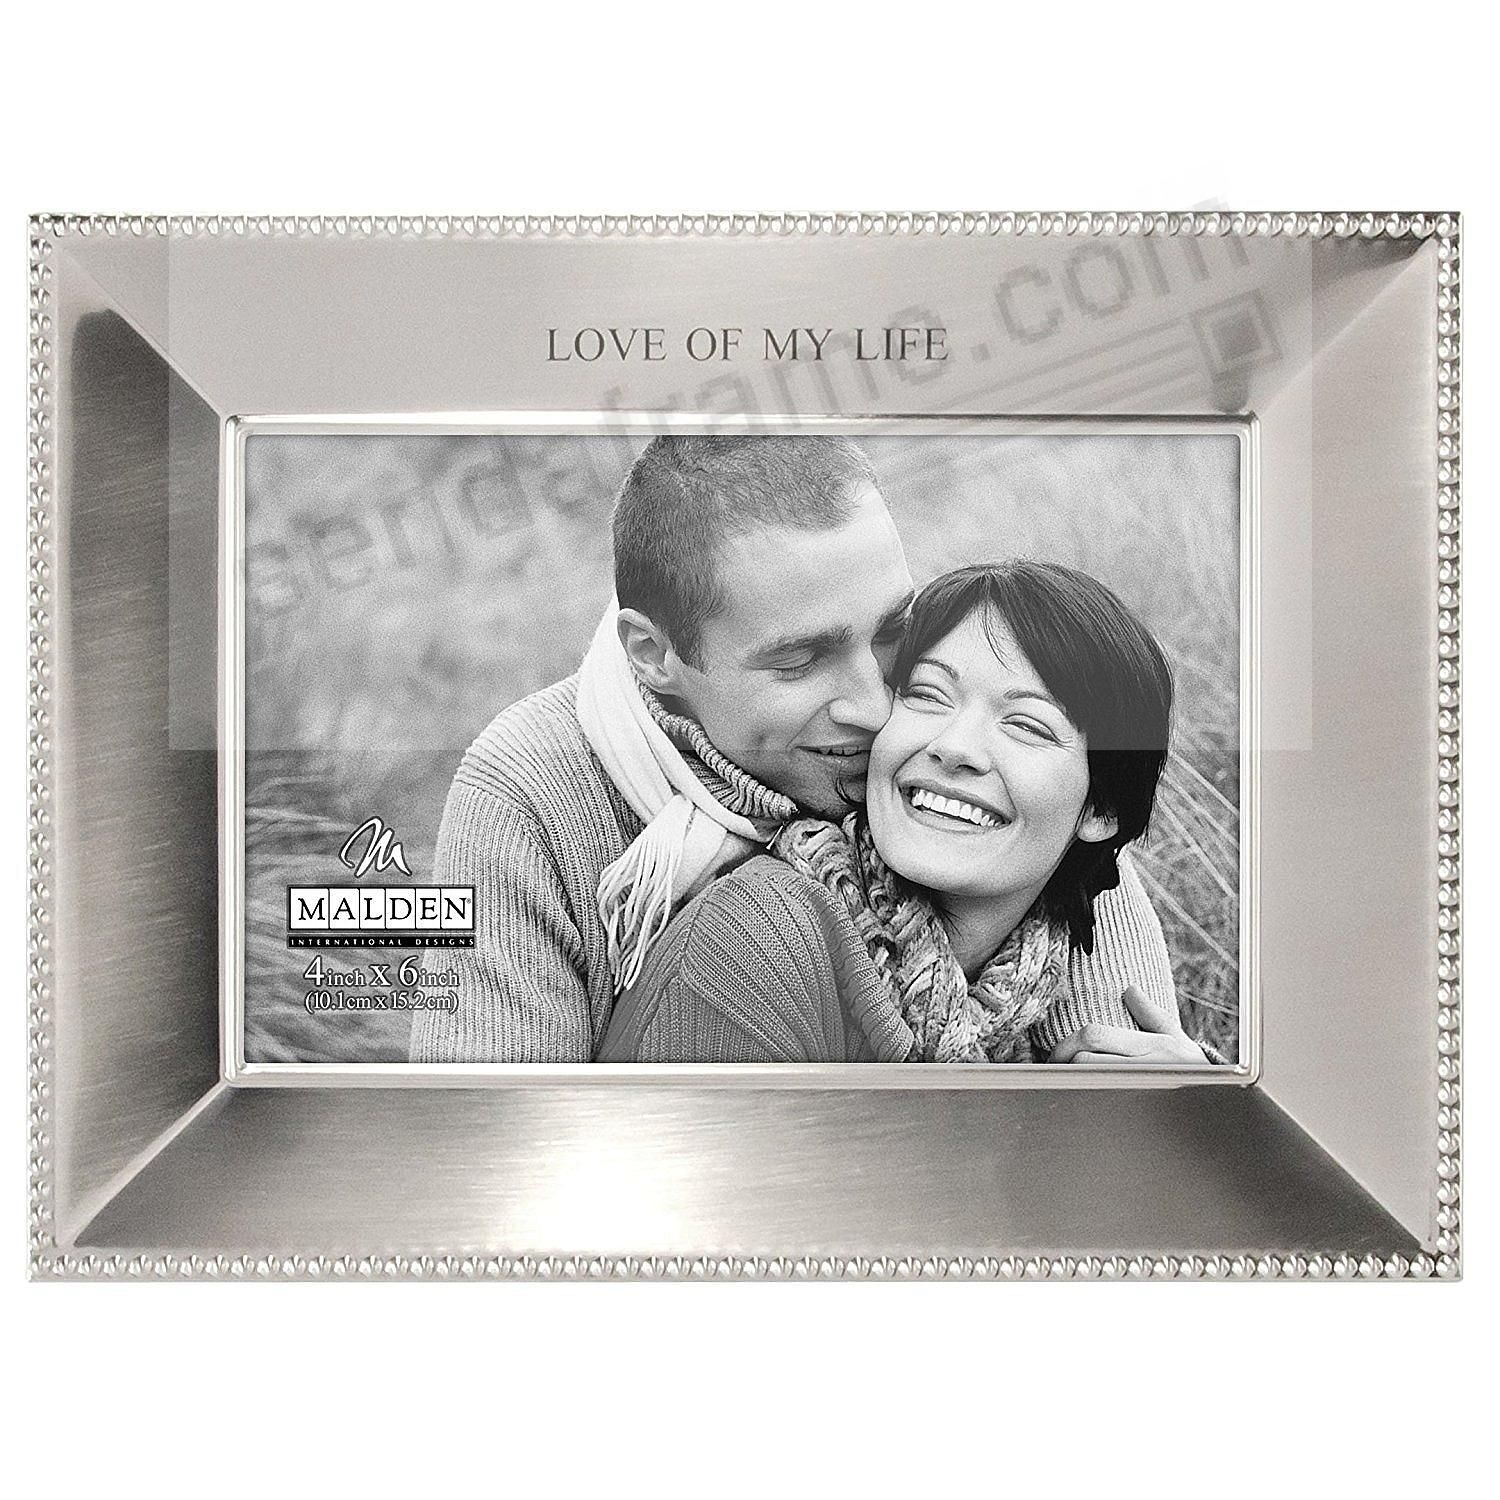 LOVE OF MY LIFE 6x4 silver bead keepsake frame - Picture Frames ...